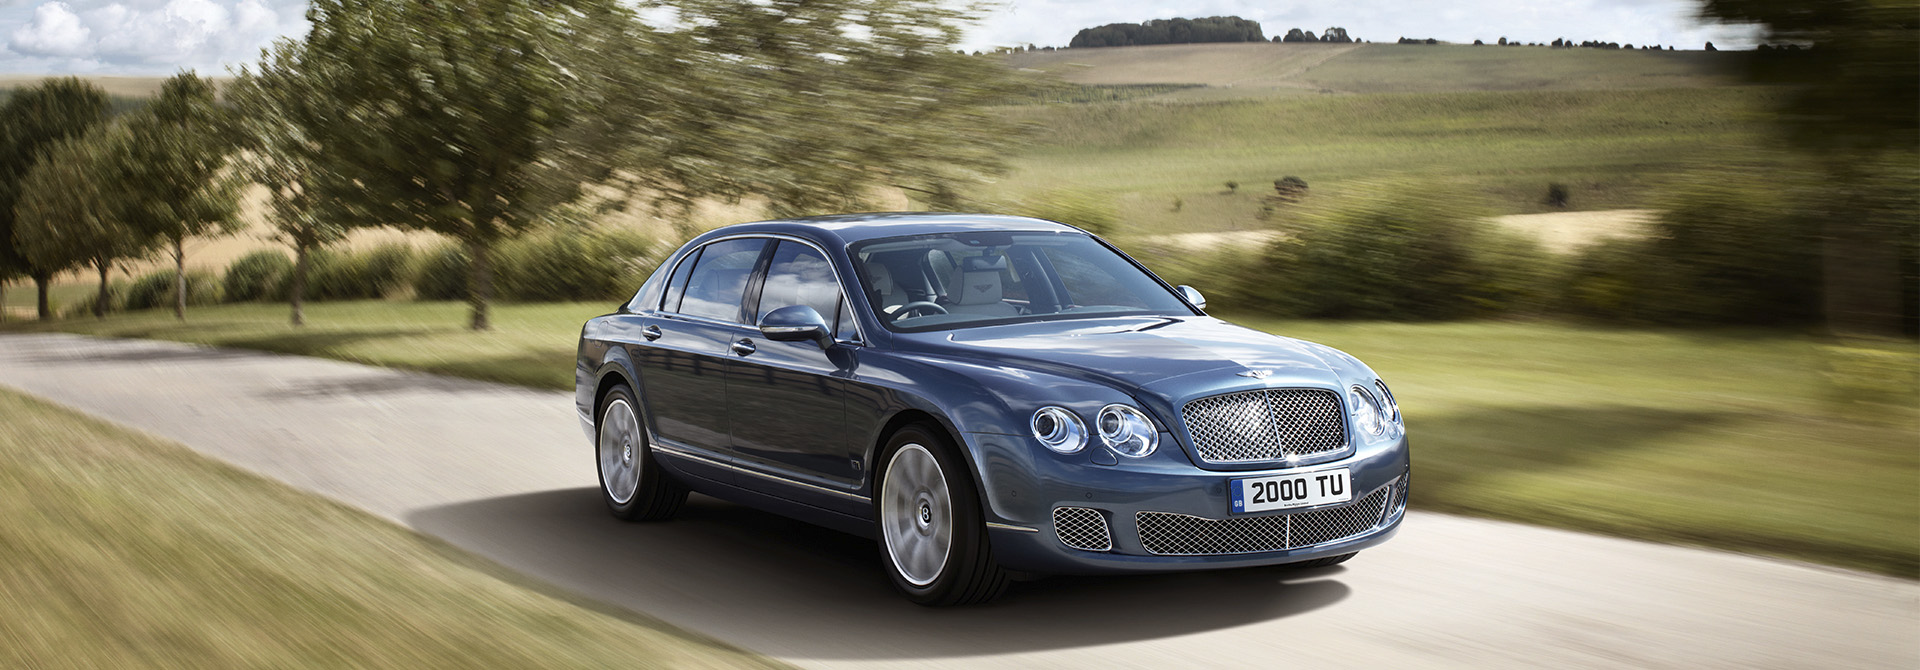 The Continental Flying Spur - Bentley Past Models